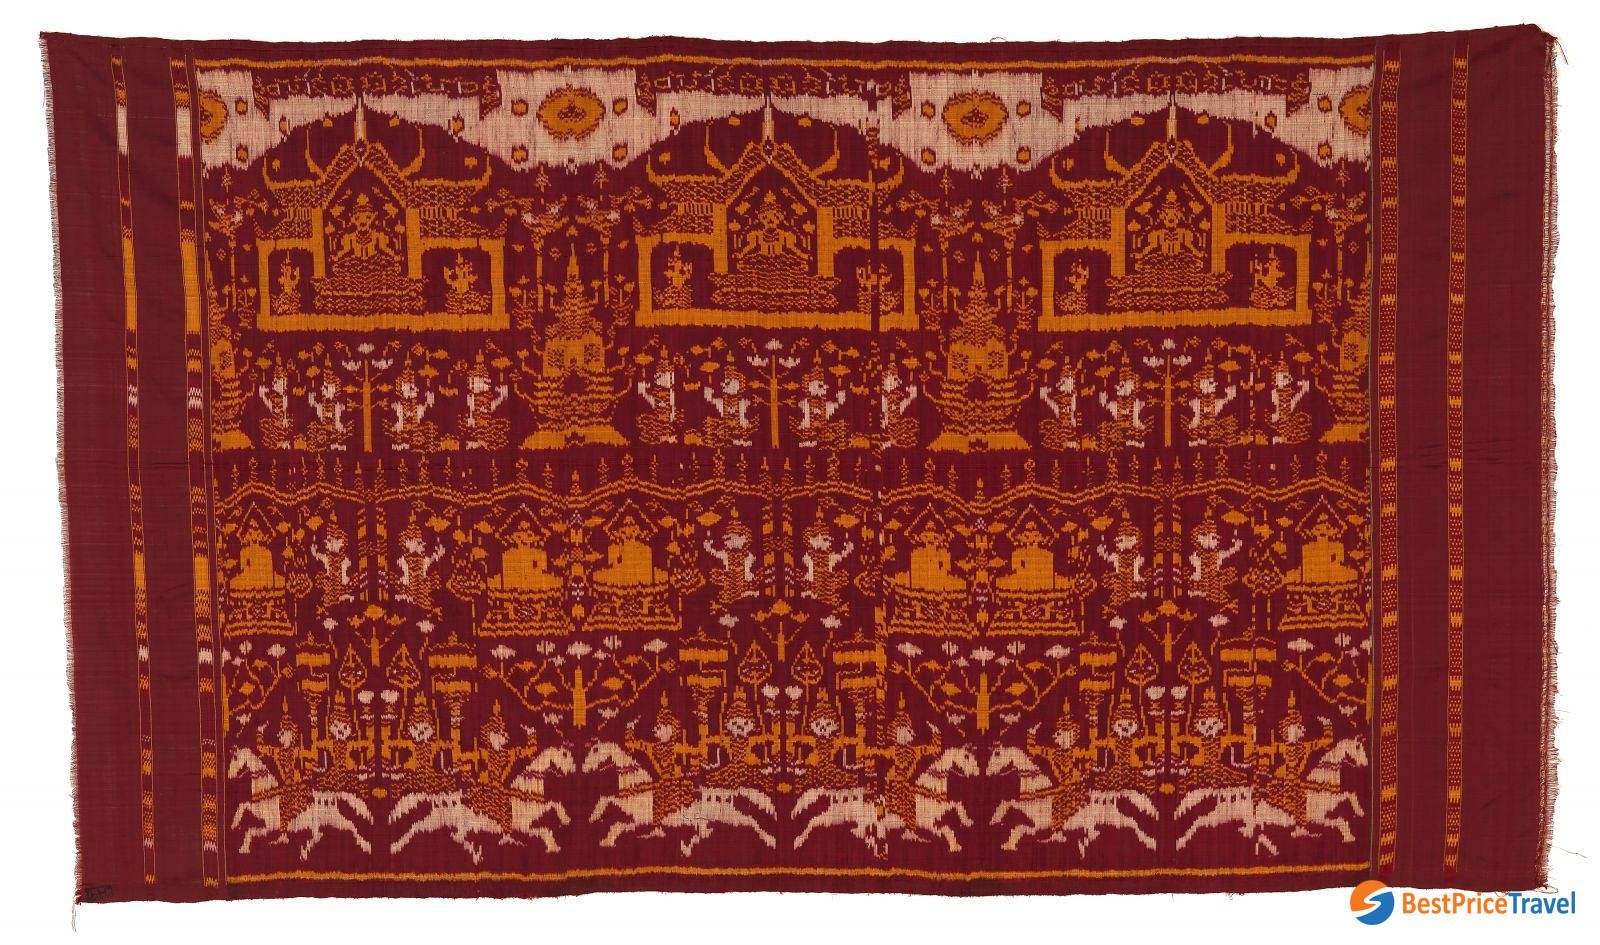 A Master Piece Pidan Silk for perfect souvenirs from Cambodia